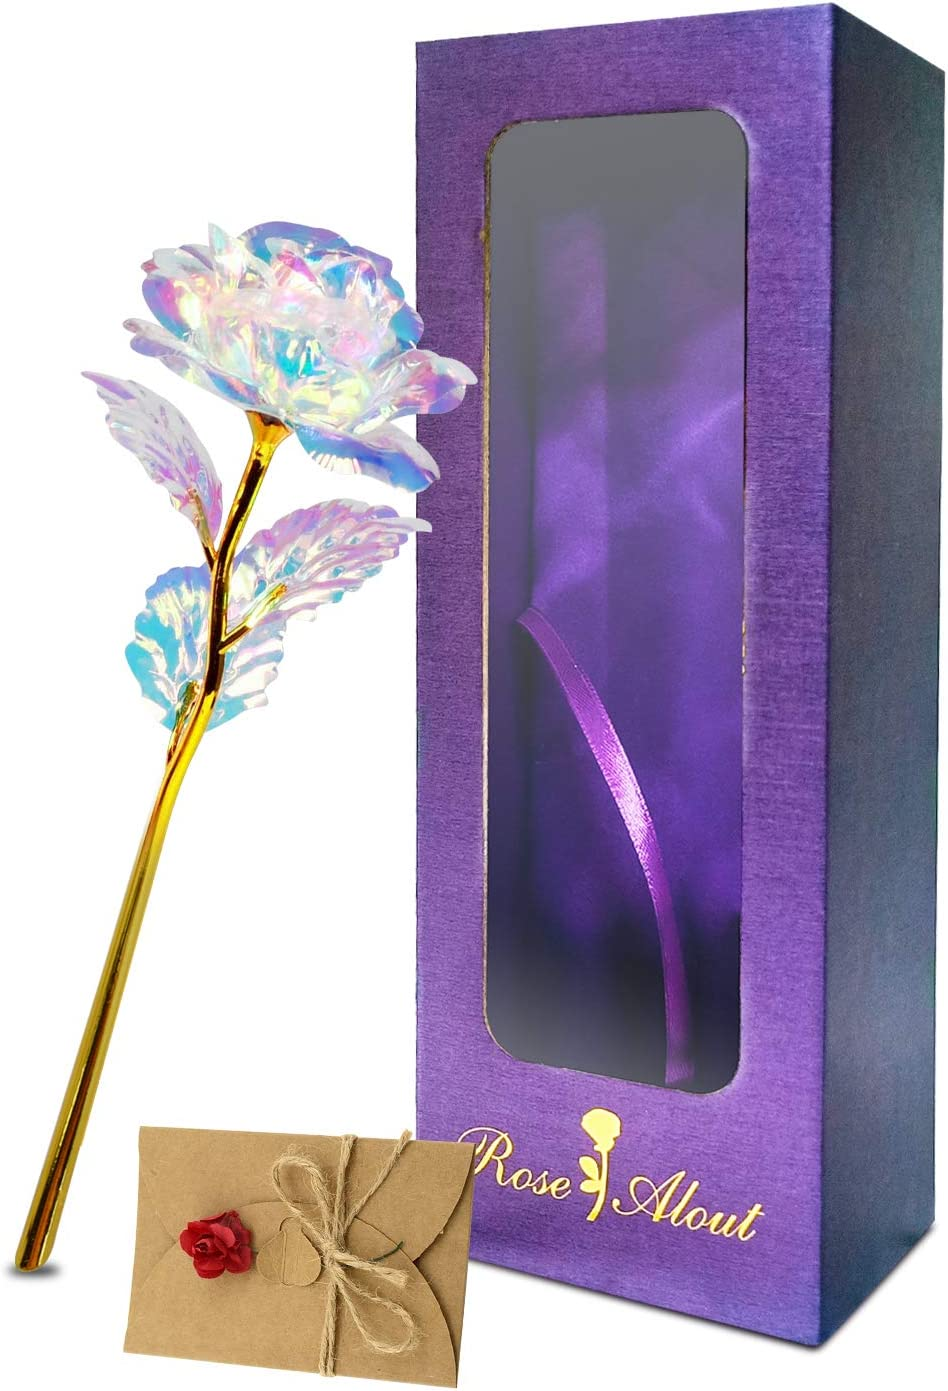 Valentines Day 24K Gold Safety and trust Galaxy Rose Mothers Girlfriend 40% OFF Cheap Sale Gifts for